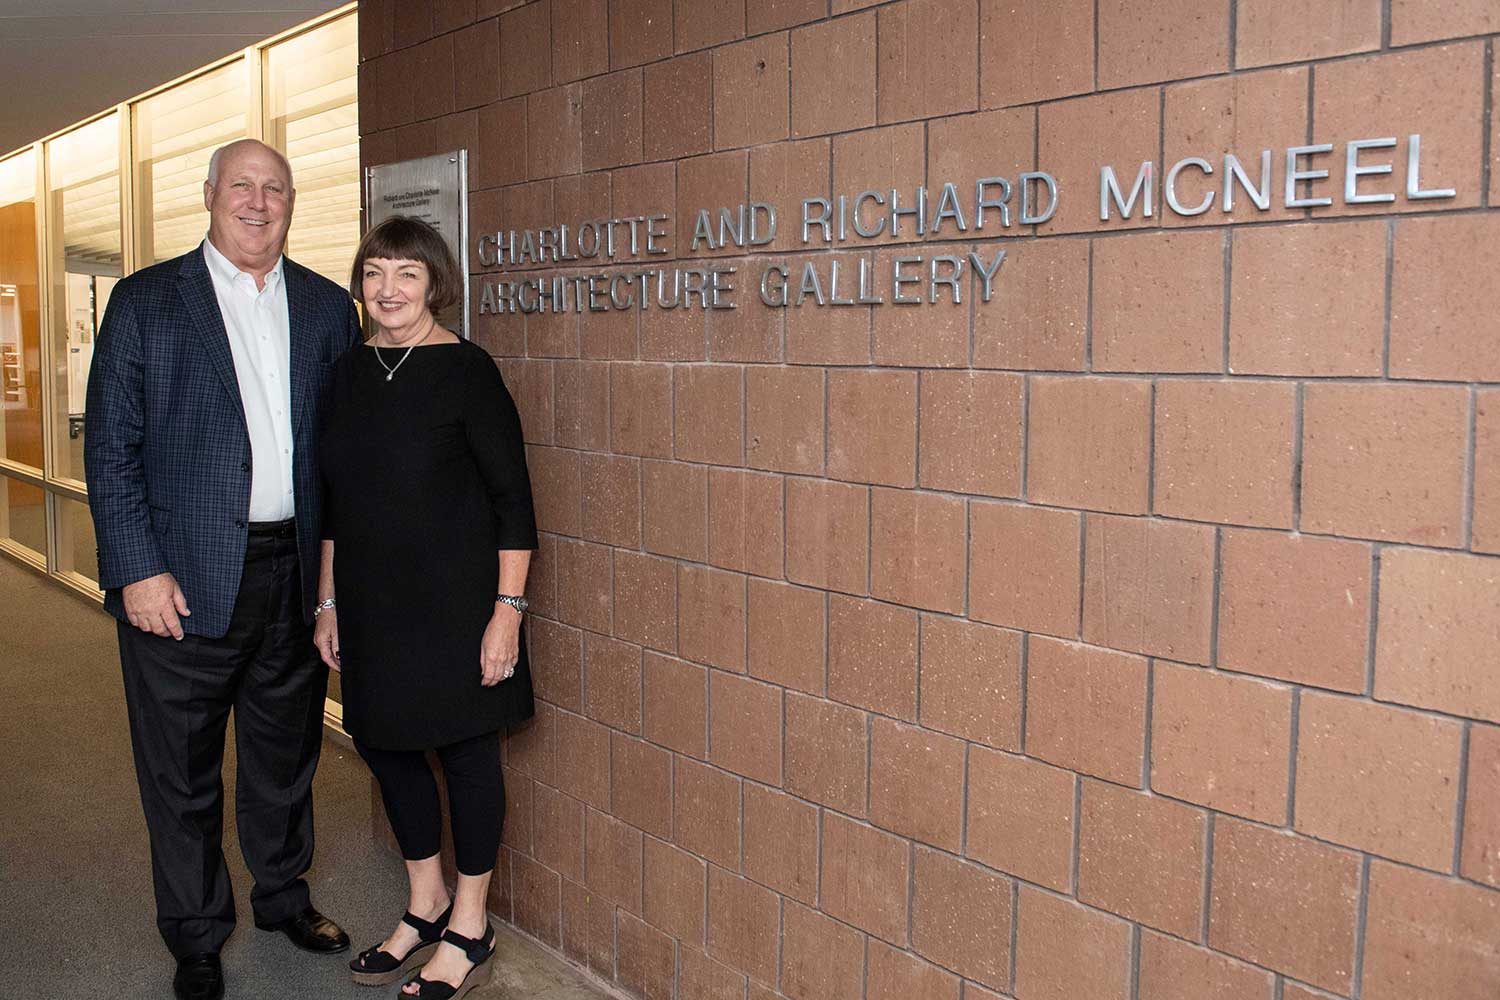 pictured outside of gallery in Giles Hall, left to right, Richard McNeel and Charlotte McNeel